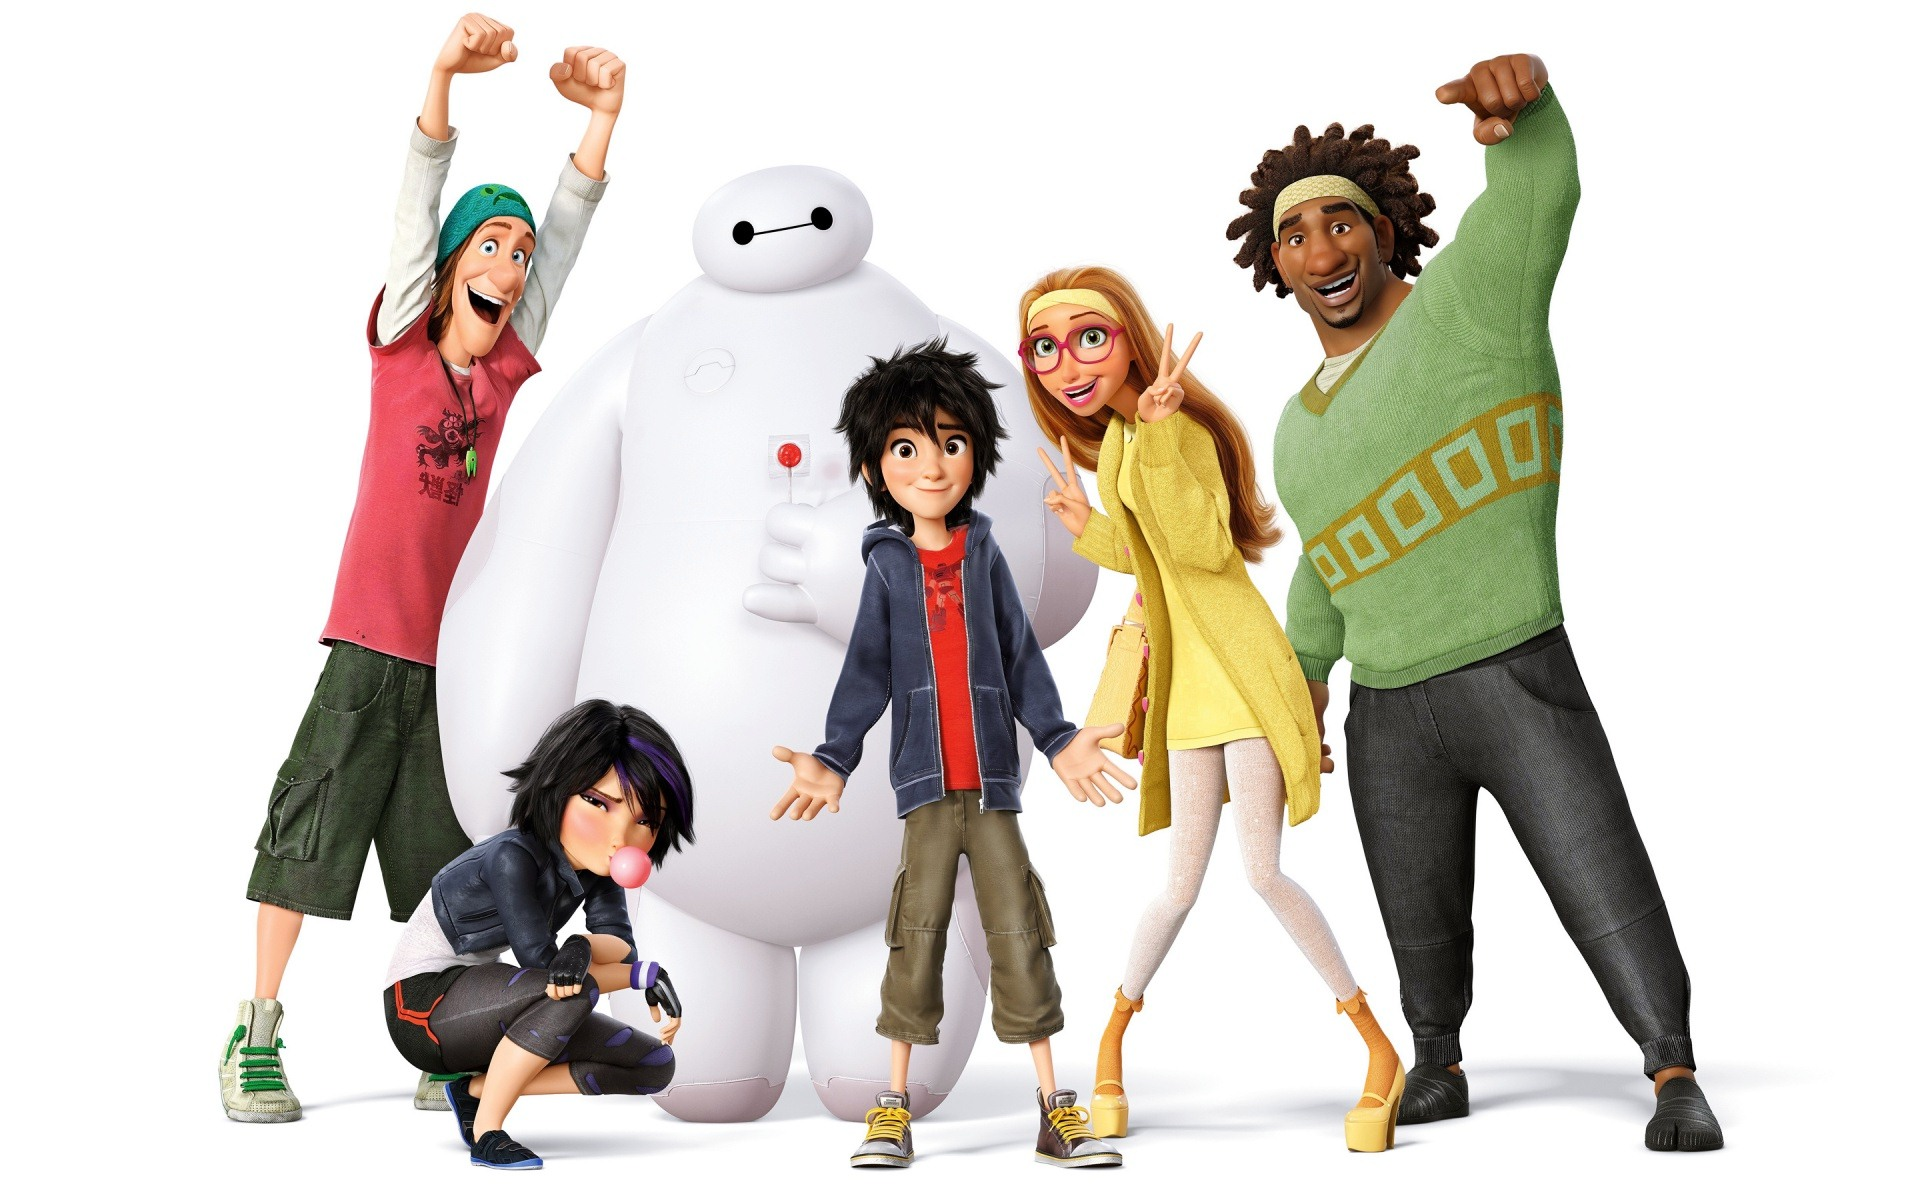 Big hero 6 clipart png black and white download Big Hero 6 Clipart - Clipart Kid png black and white download